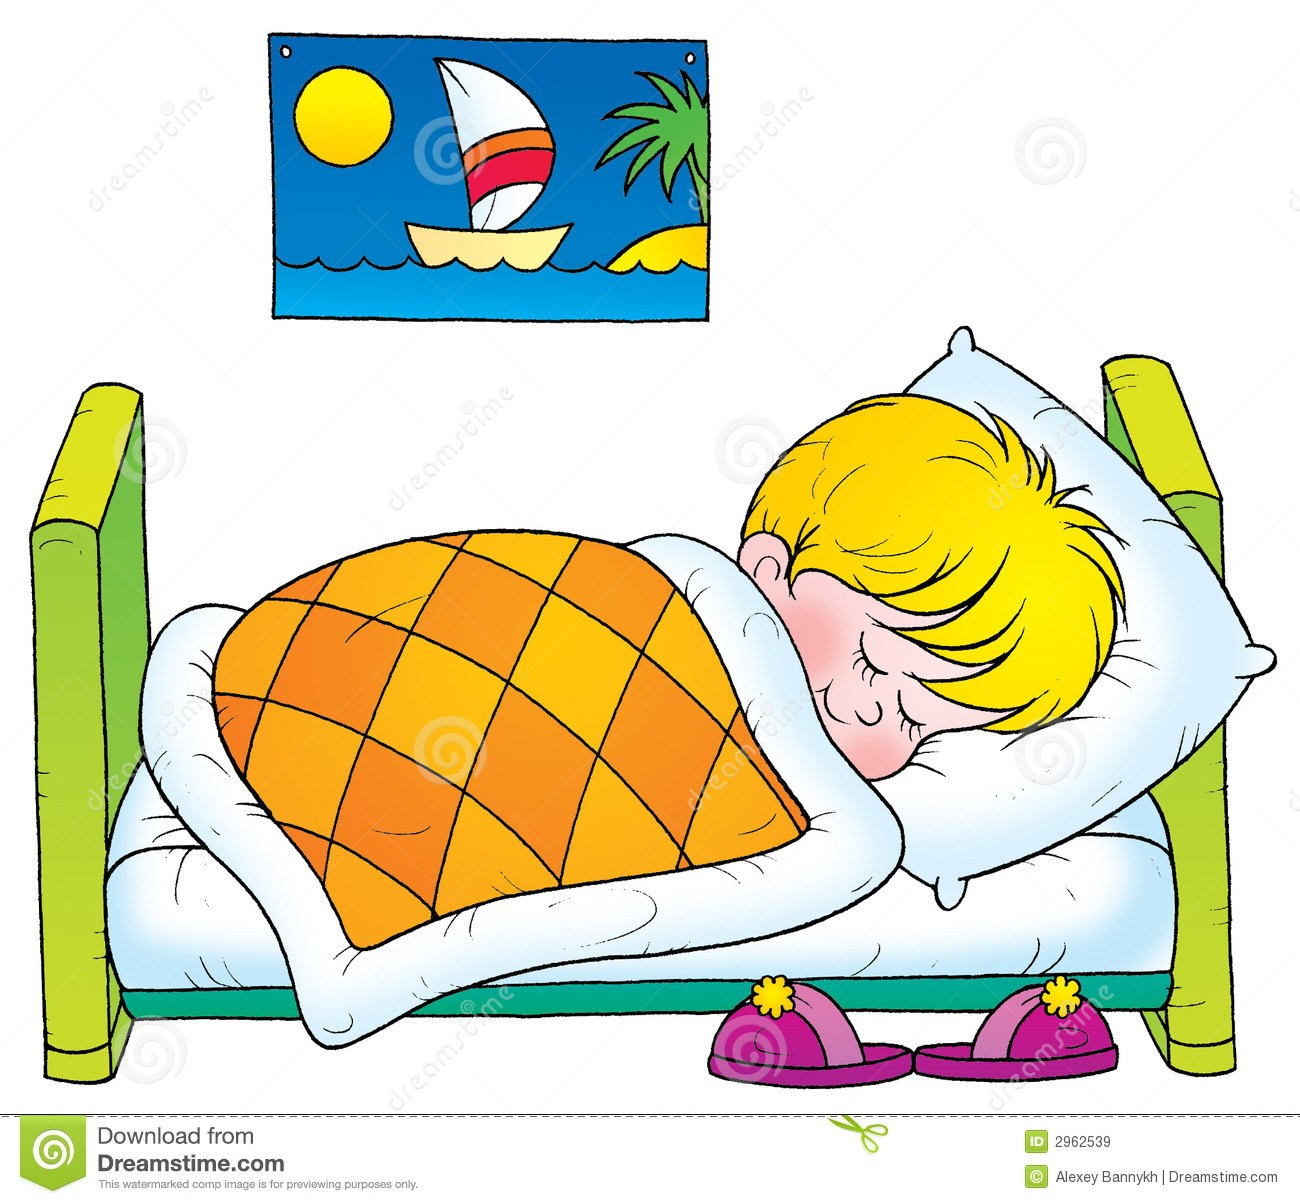 To sleep clipart 5 » Clipart Portal.